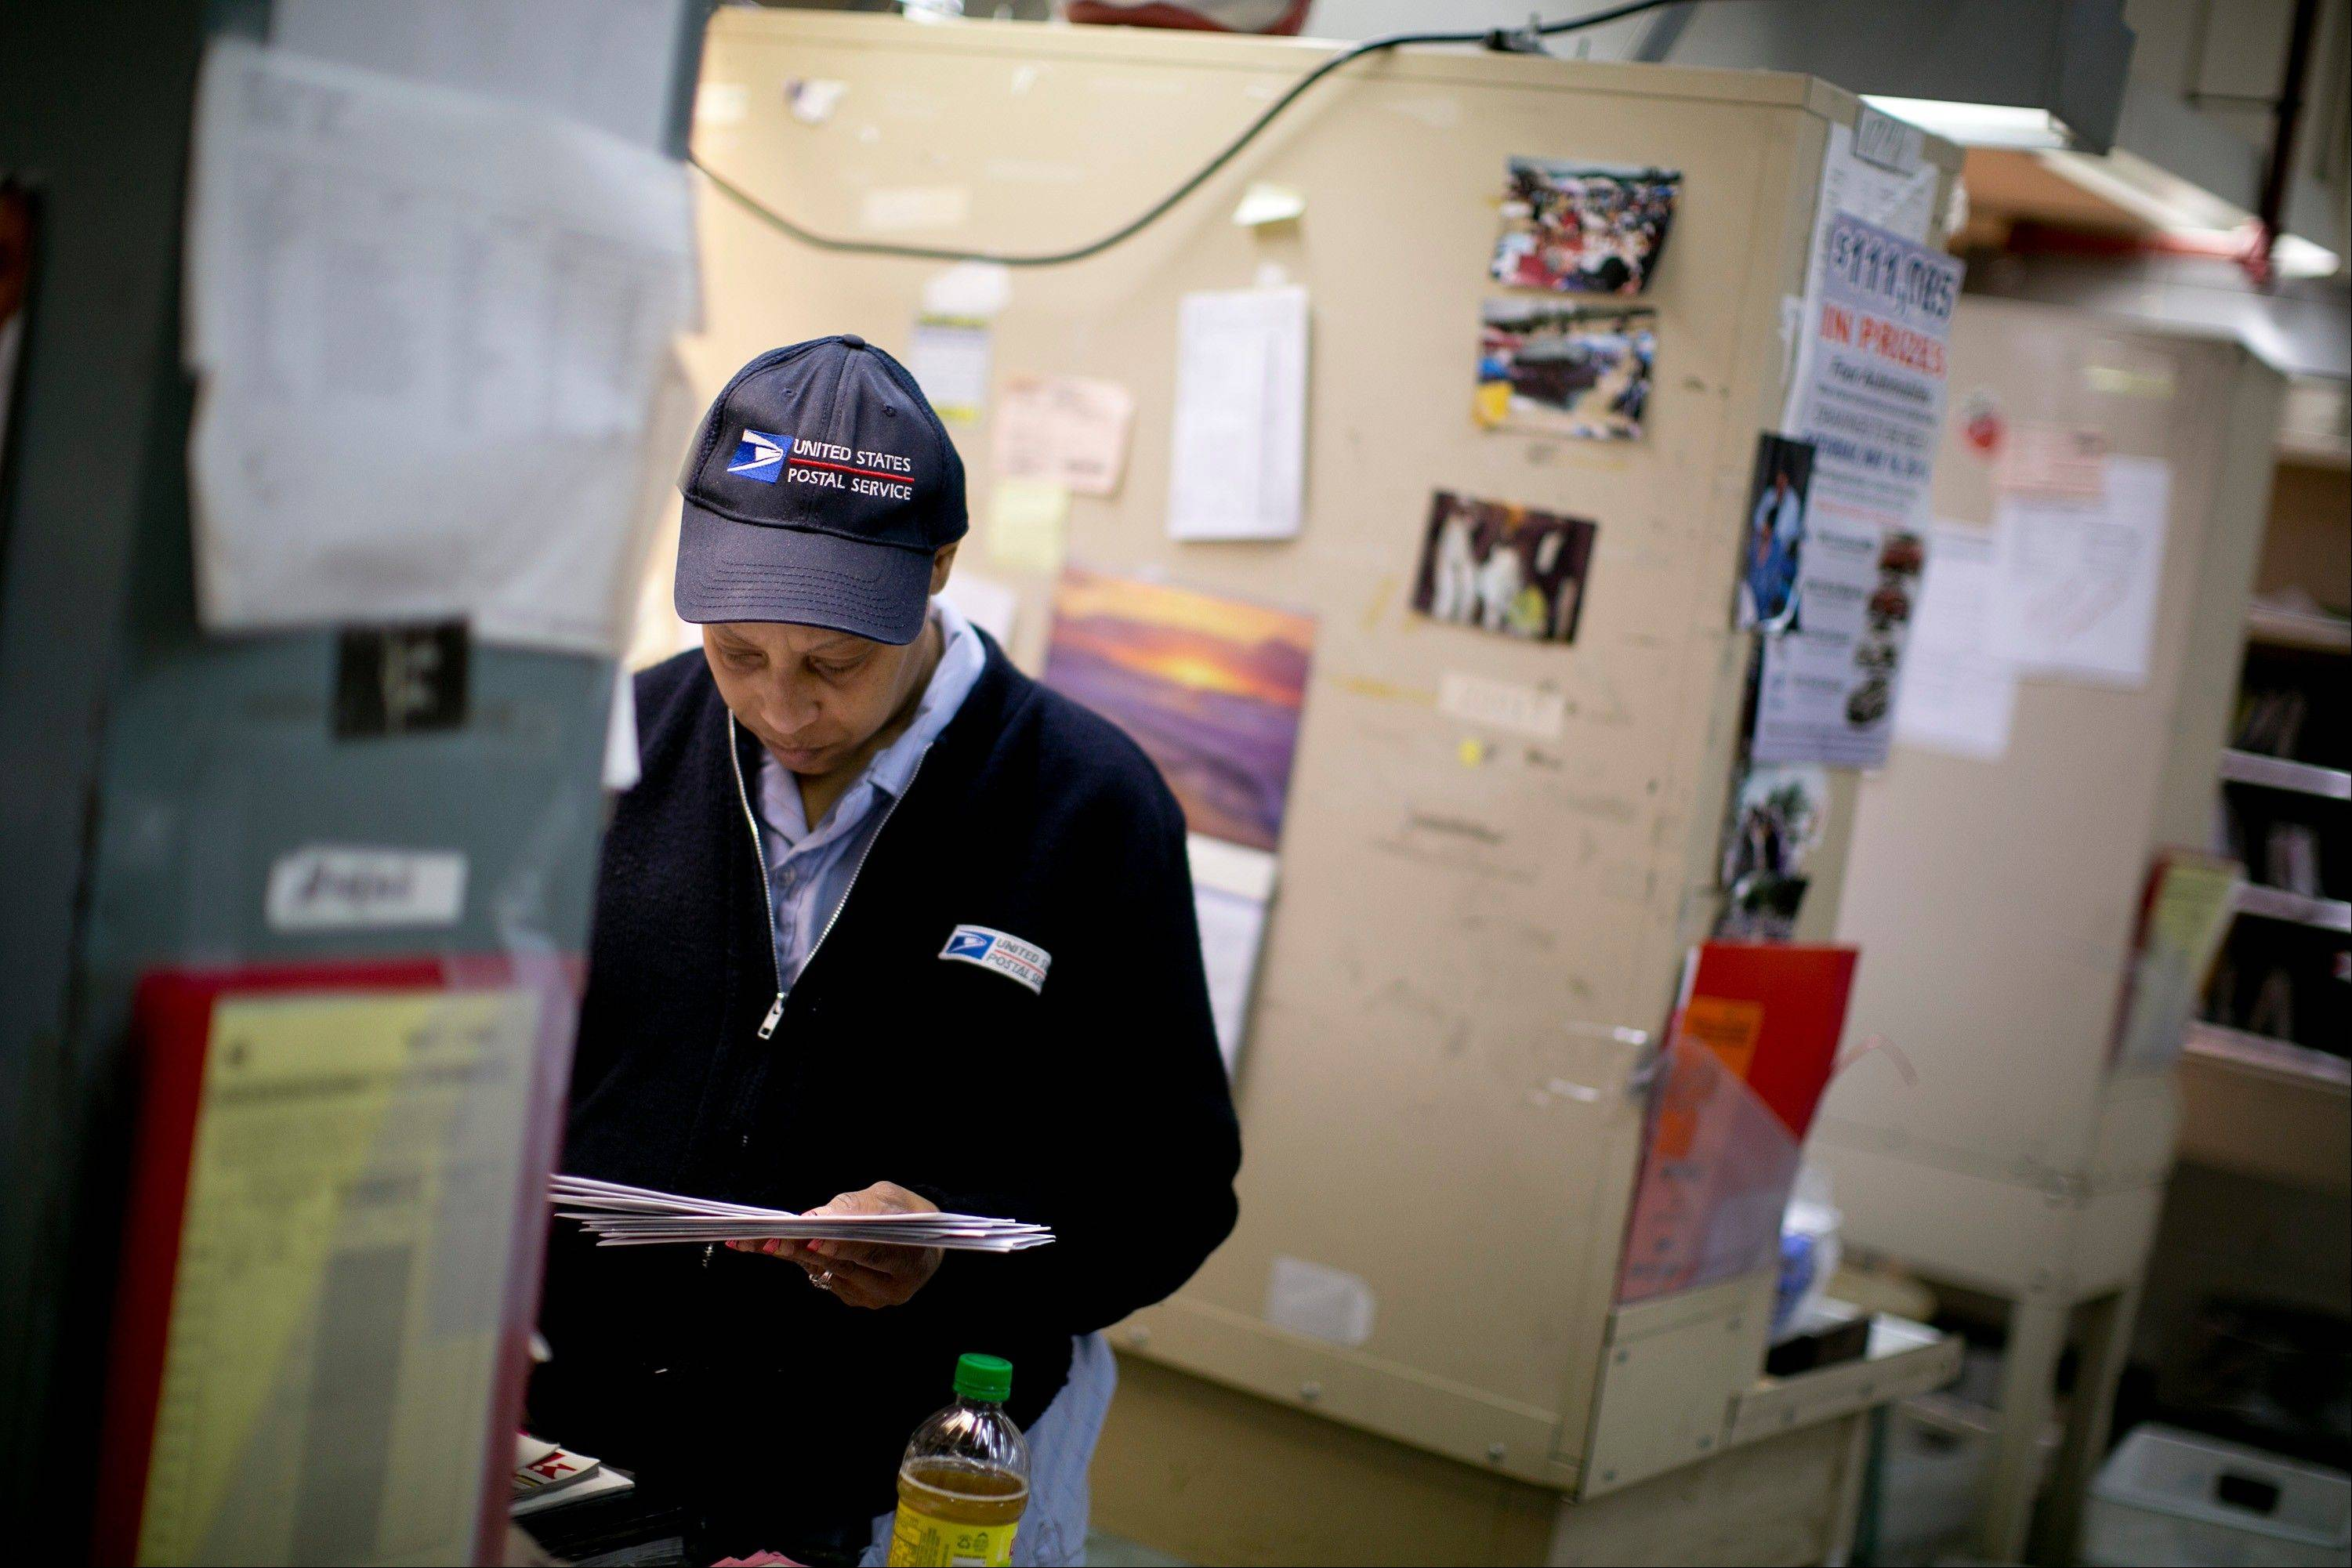 U.S. Postal Service (USPS) letter carrier Anja Wilson prepares mail for delivery Thursday at the Brookland Post Office in Washington, D.C.. The USPS is projecting a loss of as much as a $6 billion for the year.